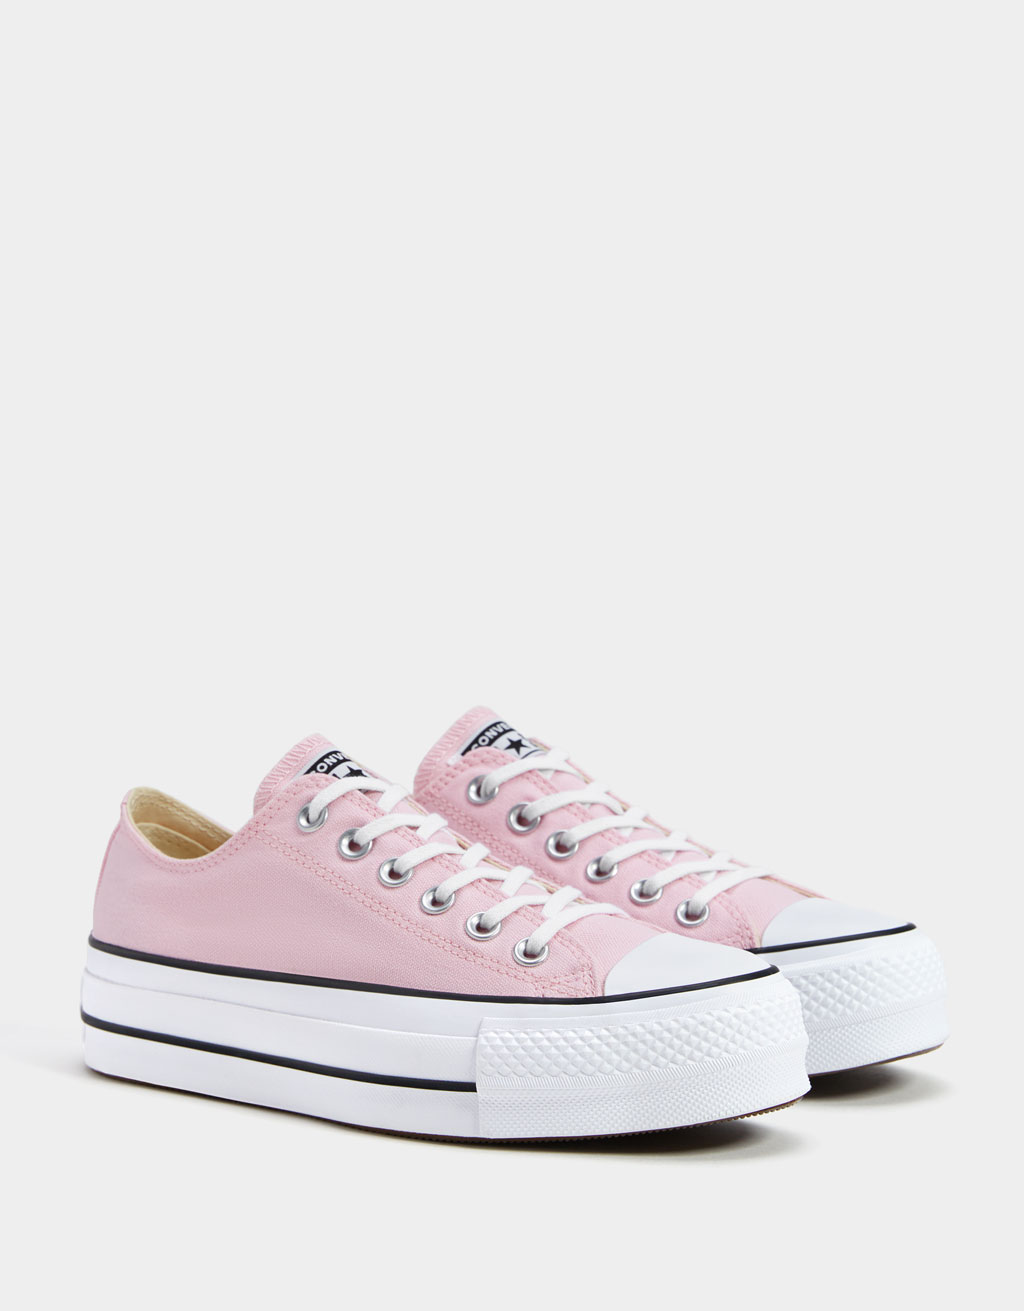 Rosa Plateau-Sneaker CONVERSE CHUCK TAYLOR ALL STAR